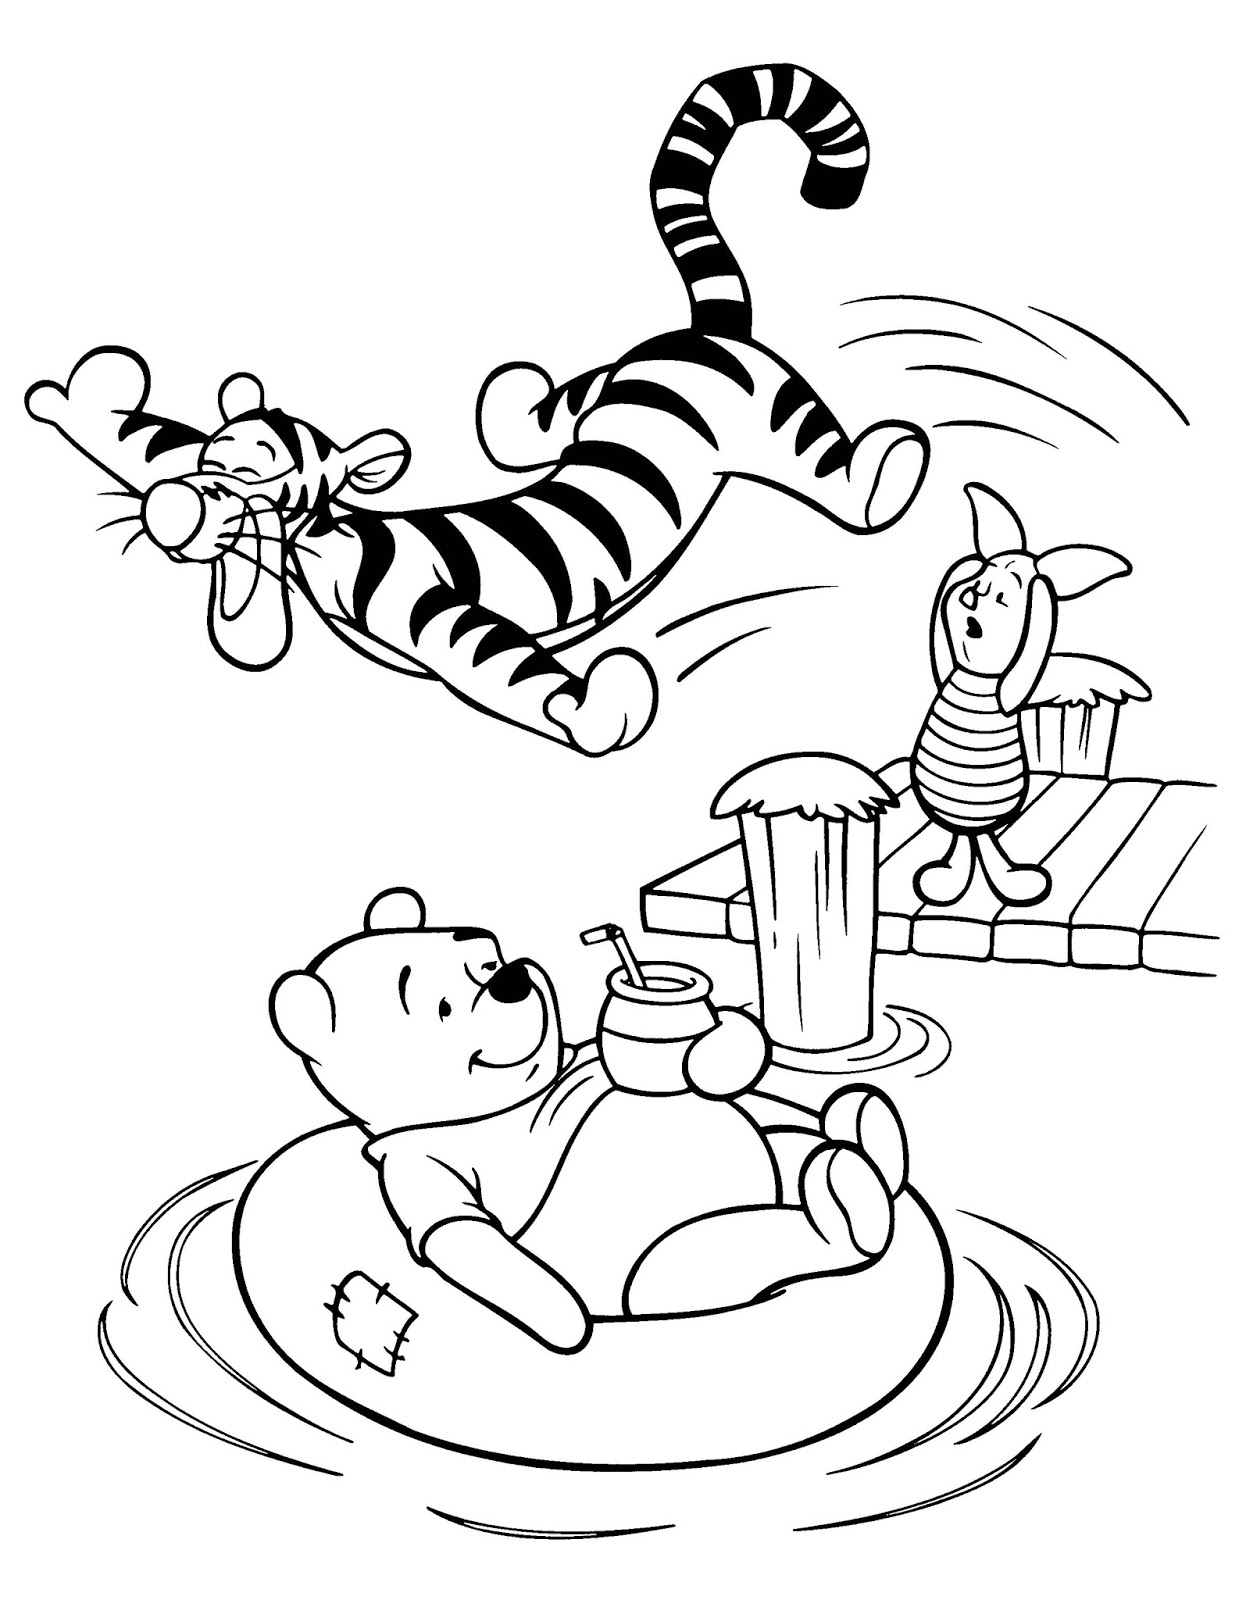 Disney colouring pages winnie the pooh - Winnie The Pooh Coloring Pages